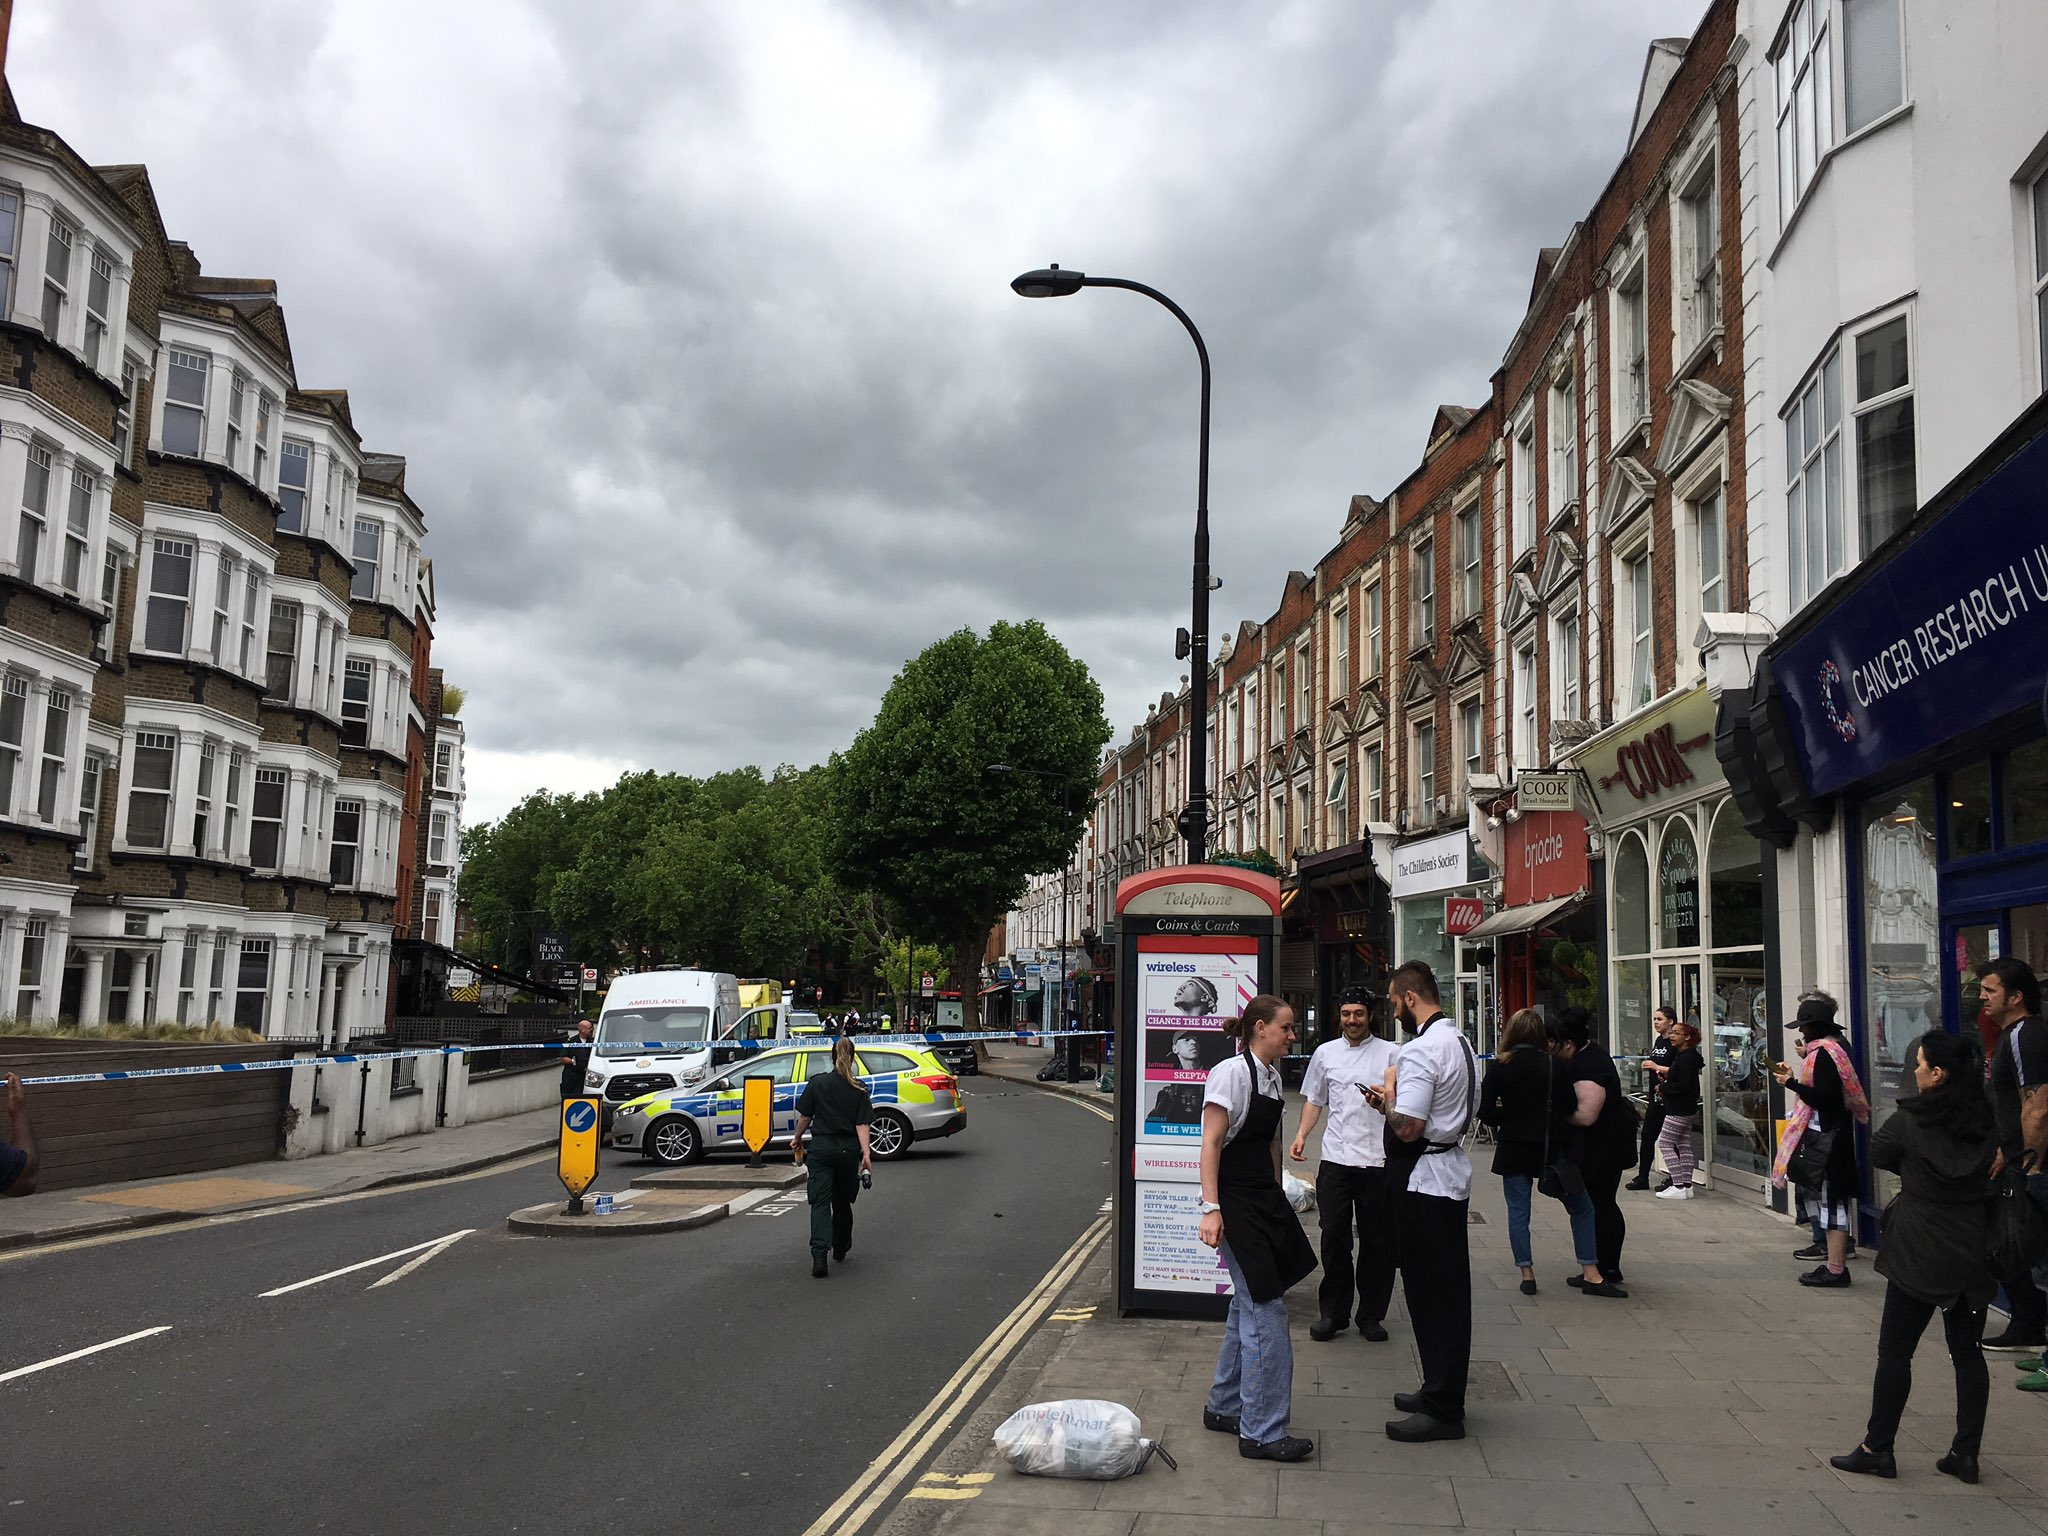 West End Lane completely closed. Best avoid the area for the time being. @WHampstead https://t.co/7IkxCiaRQU